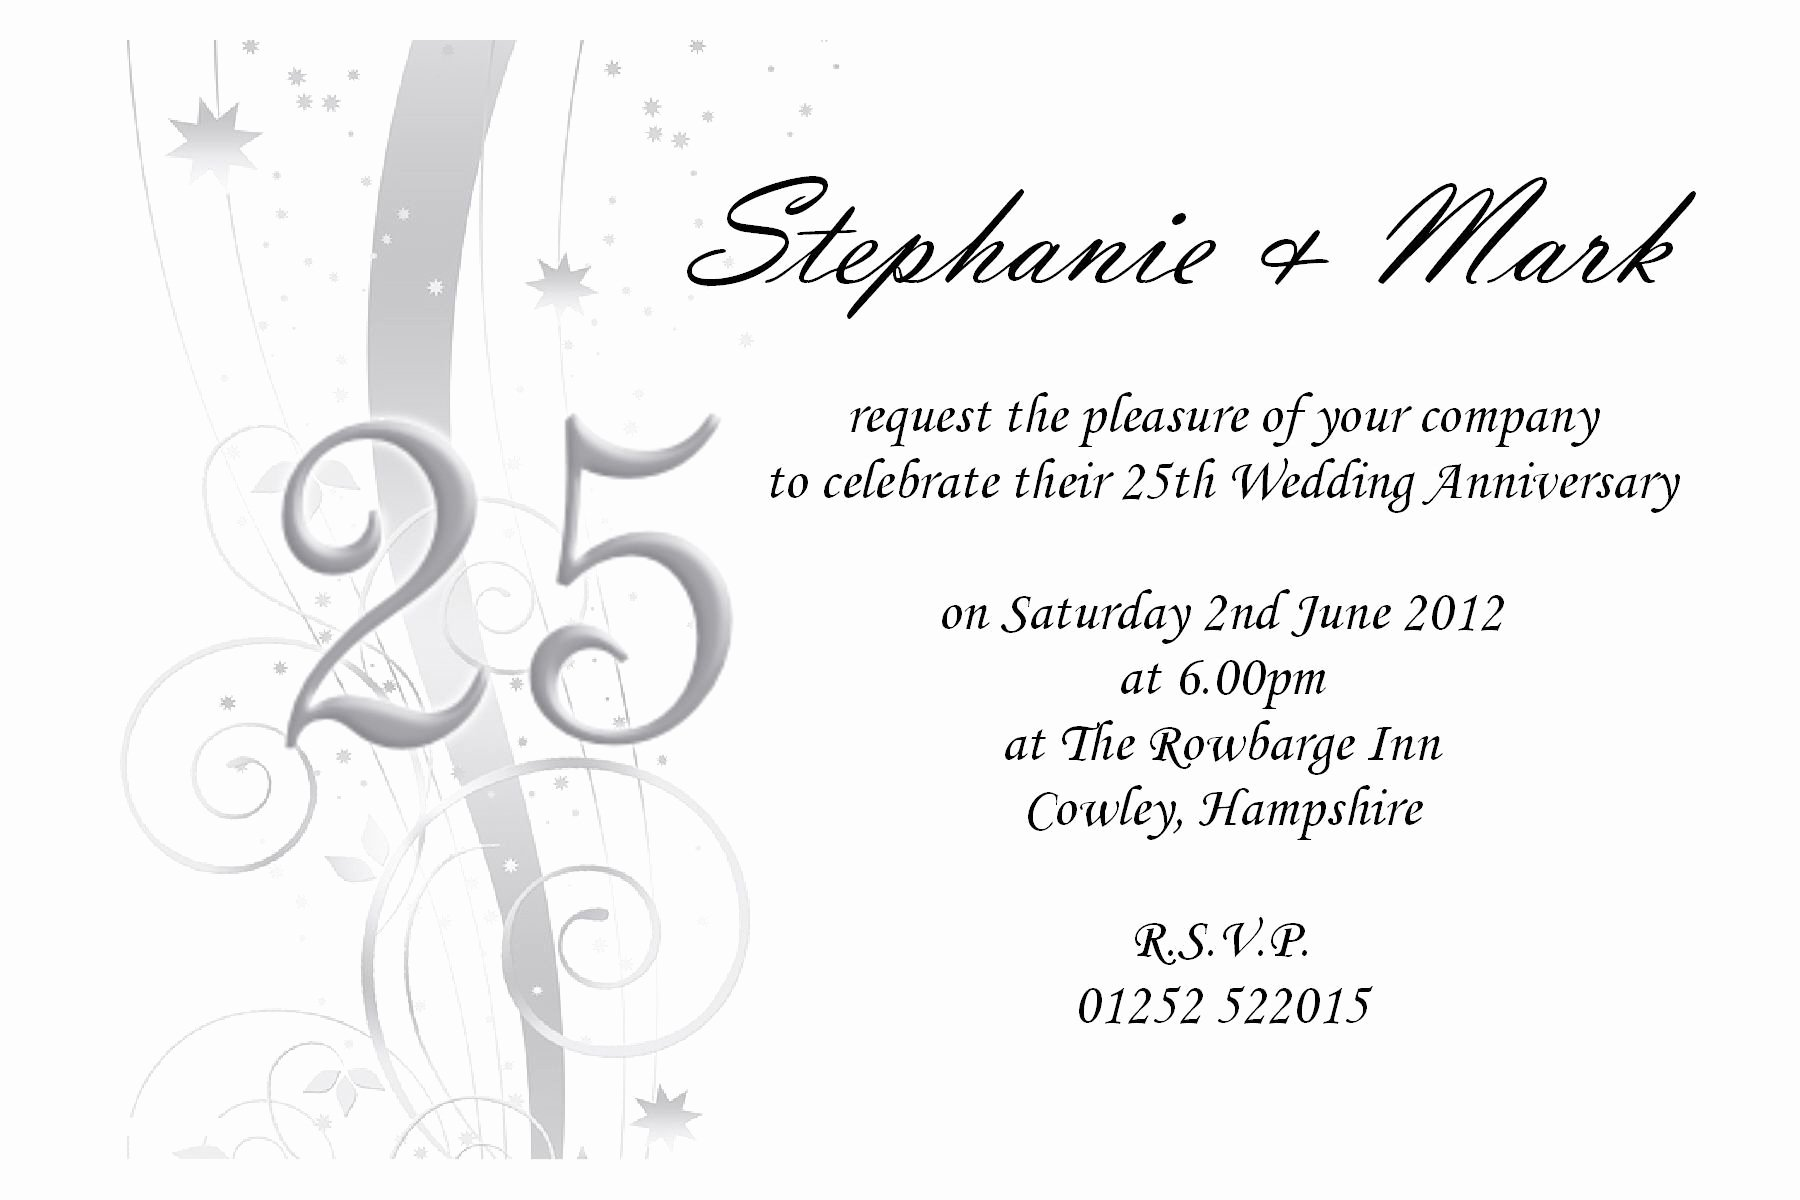 Wedding Anniversary Invite Template Fresh Free 25th Wedding Anniversary Invitations Free Online